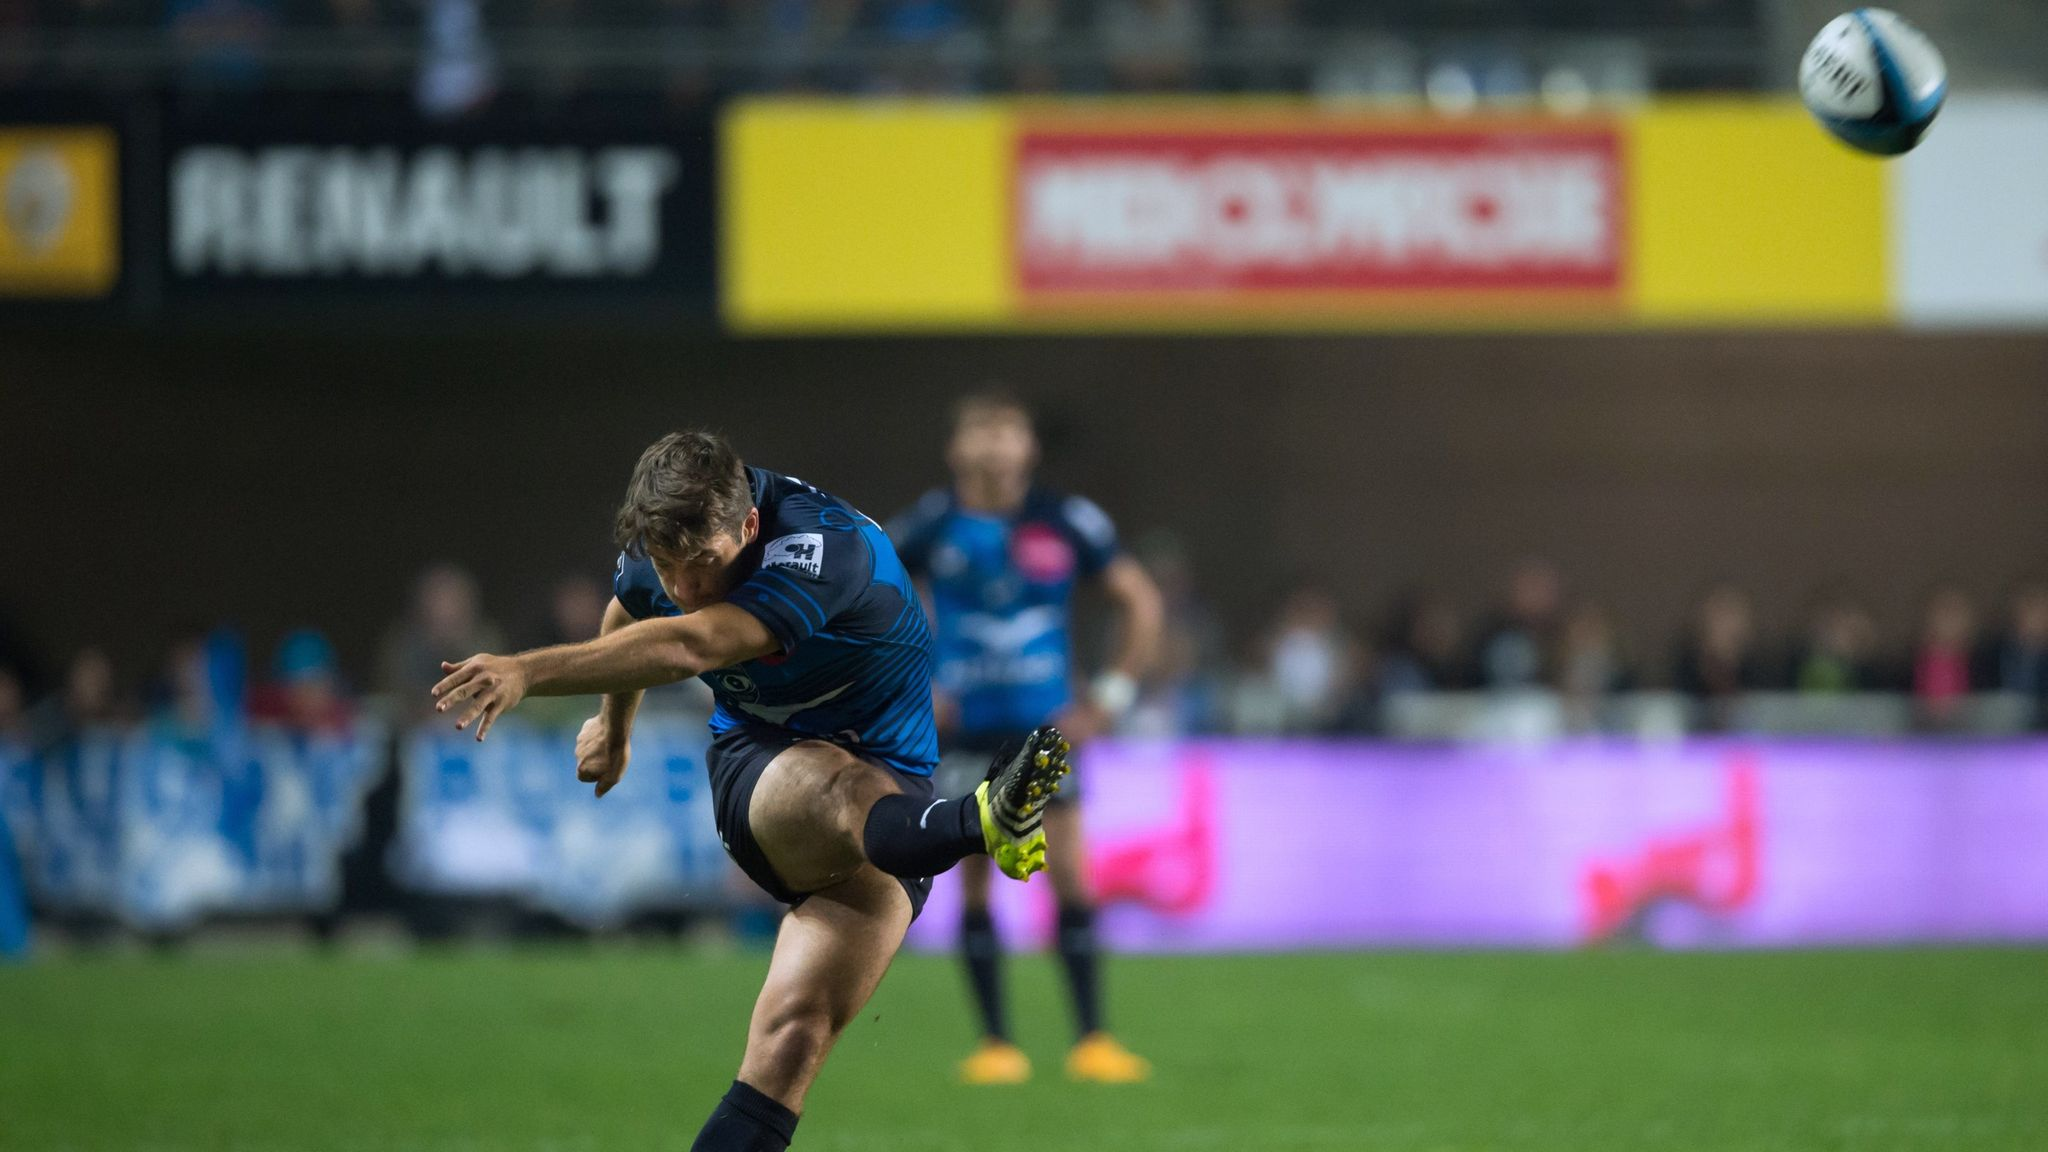 https://www.skysports.com/rugby-union/news/12321/10613411/harlequins-sign-fly-half-demetri-catrakilis-from-montpellier